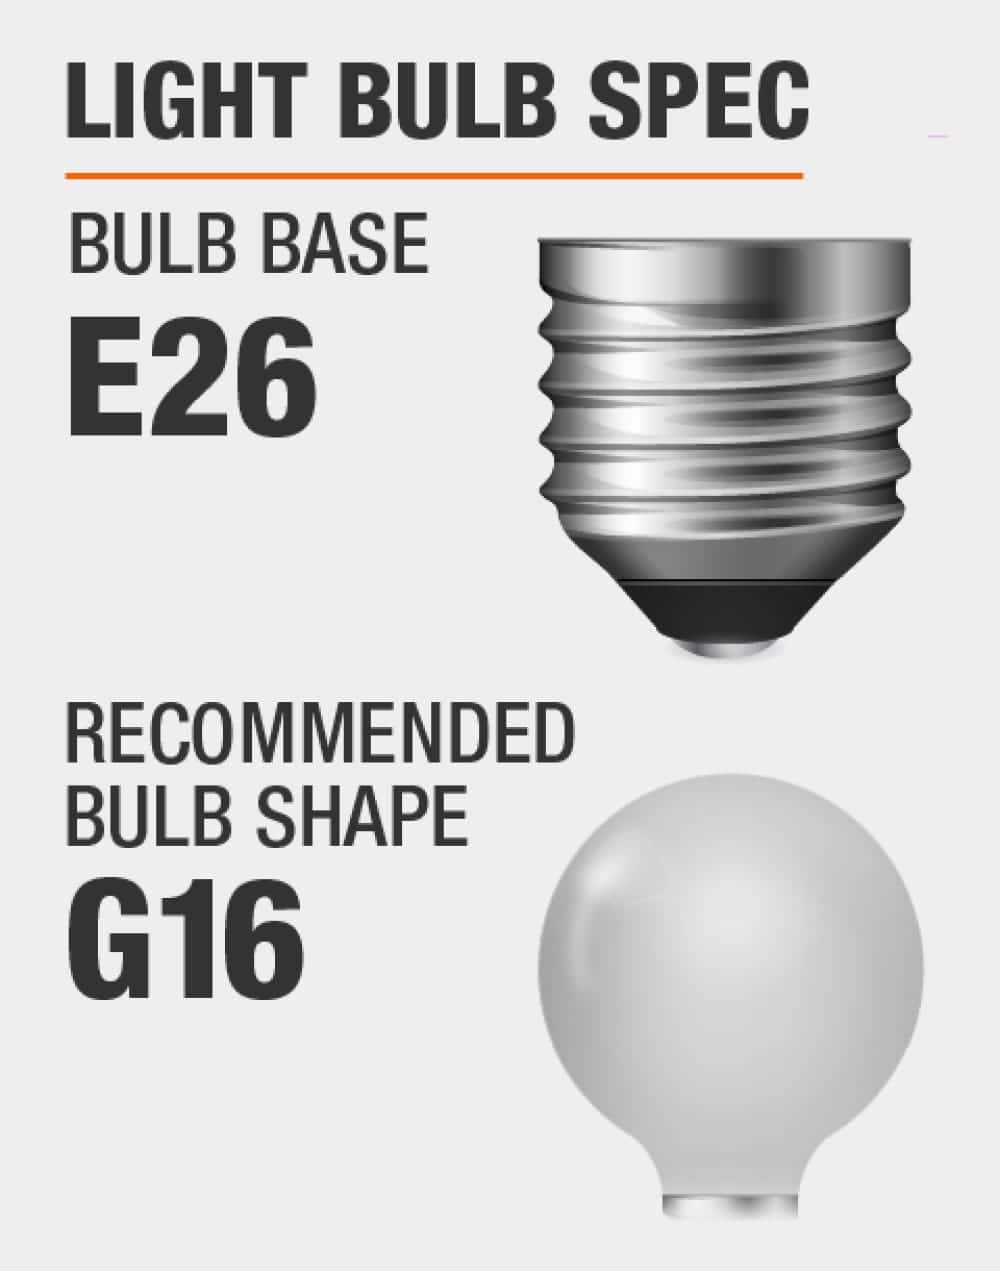 this fixture fits bulbs with E26 base and recommended bulb shape is G16